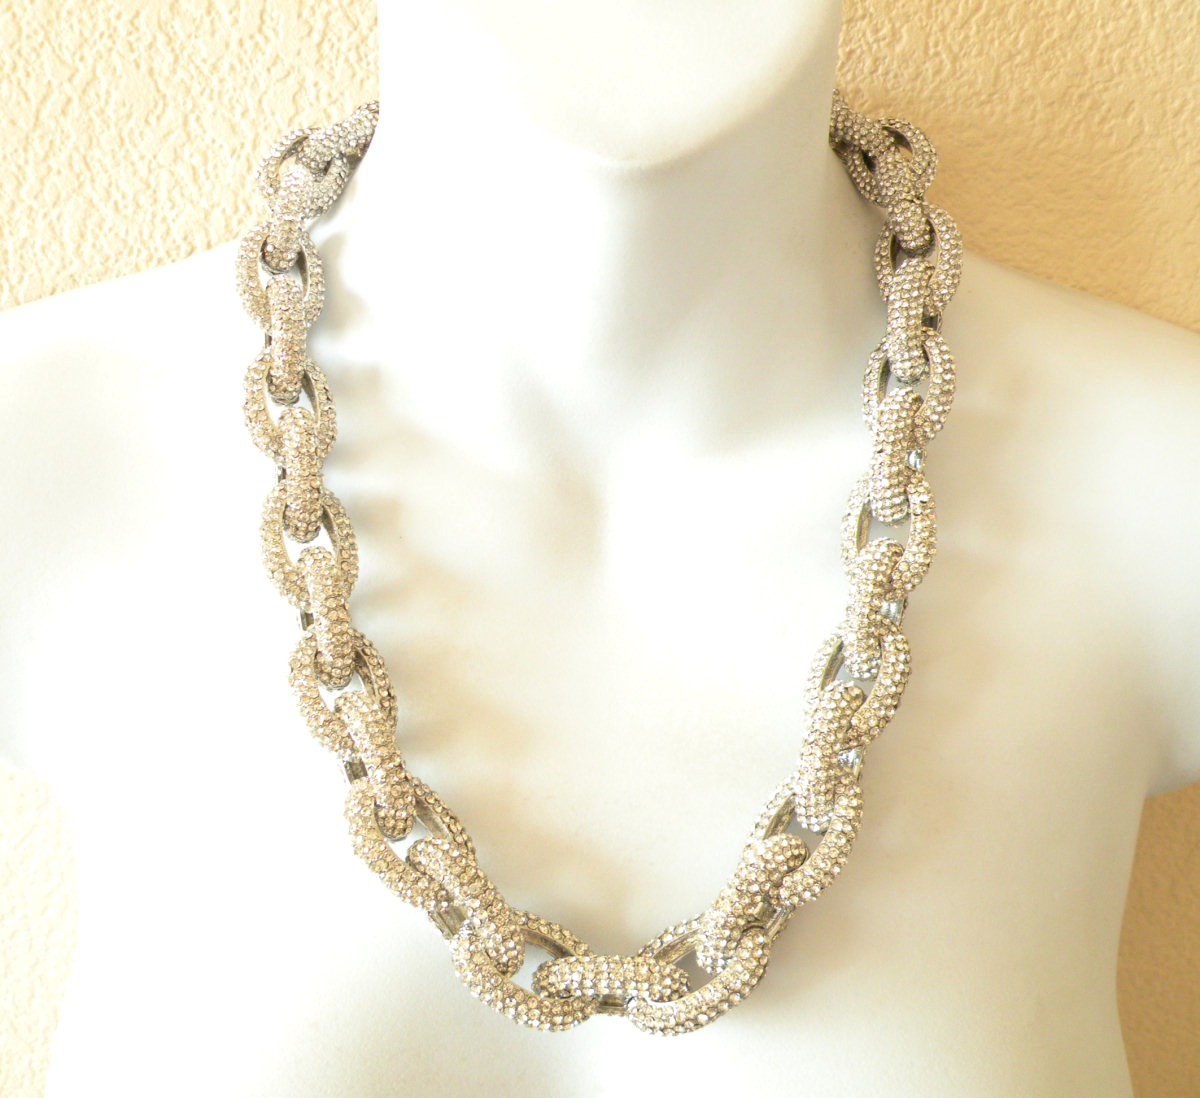 SILVER Chunky Classic Pave Link Chain Necklace J Style with 4,500+ Crystals